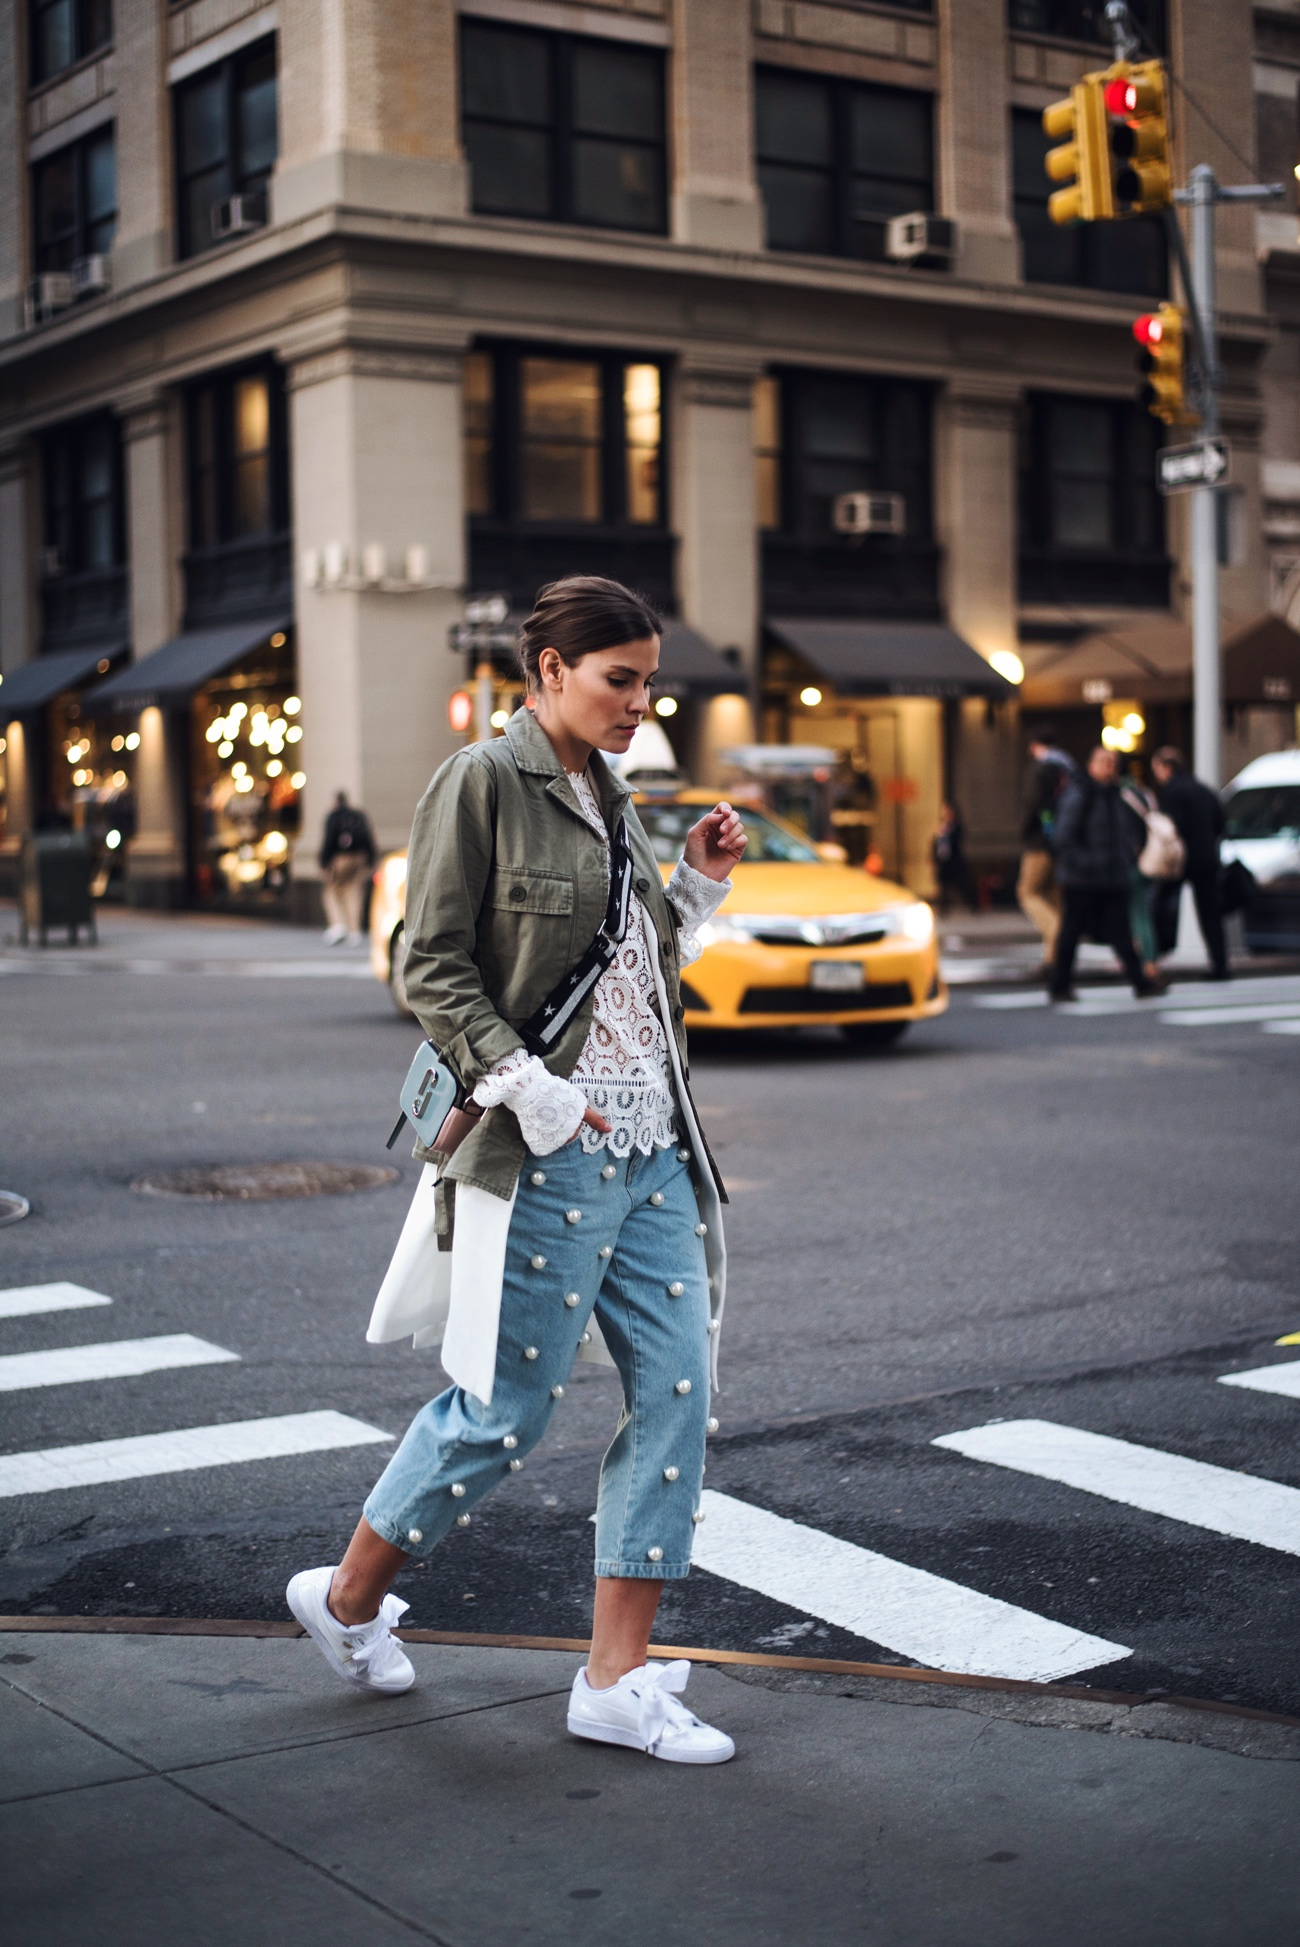 new-york-streetstyle-fashion-week-blogger-look-layering-trends-nina-schwichtenberg-fashiioncarpet